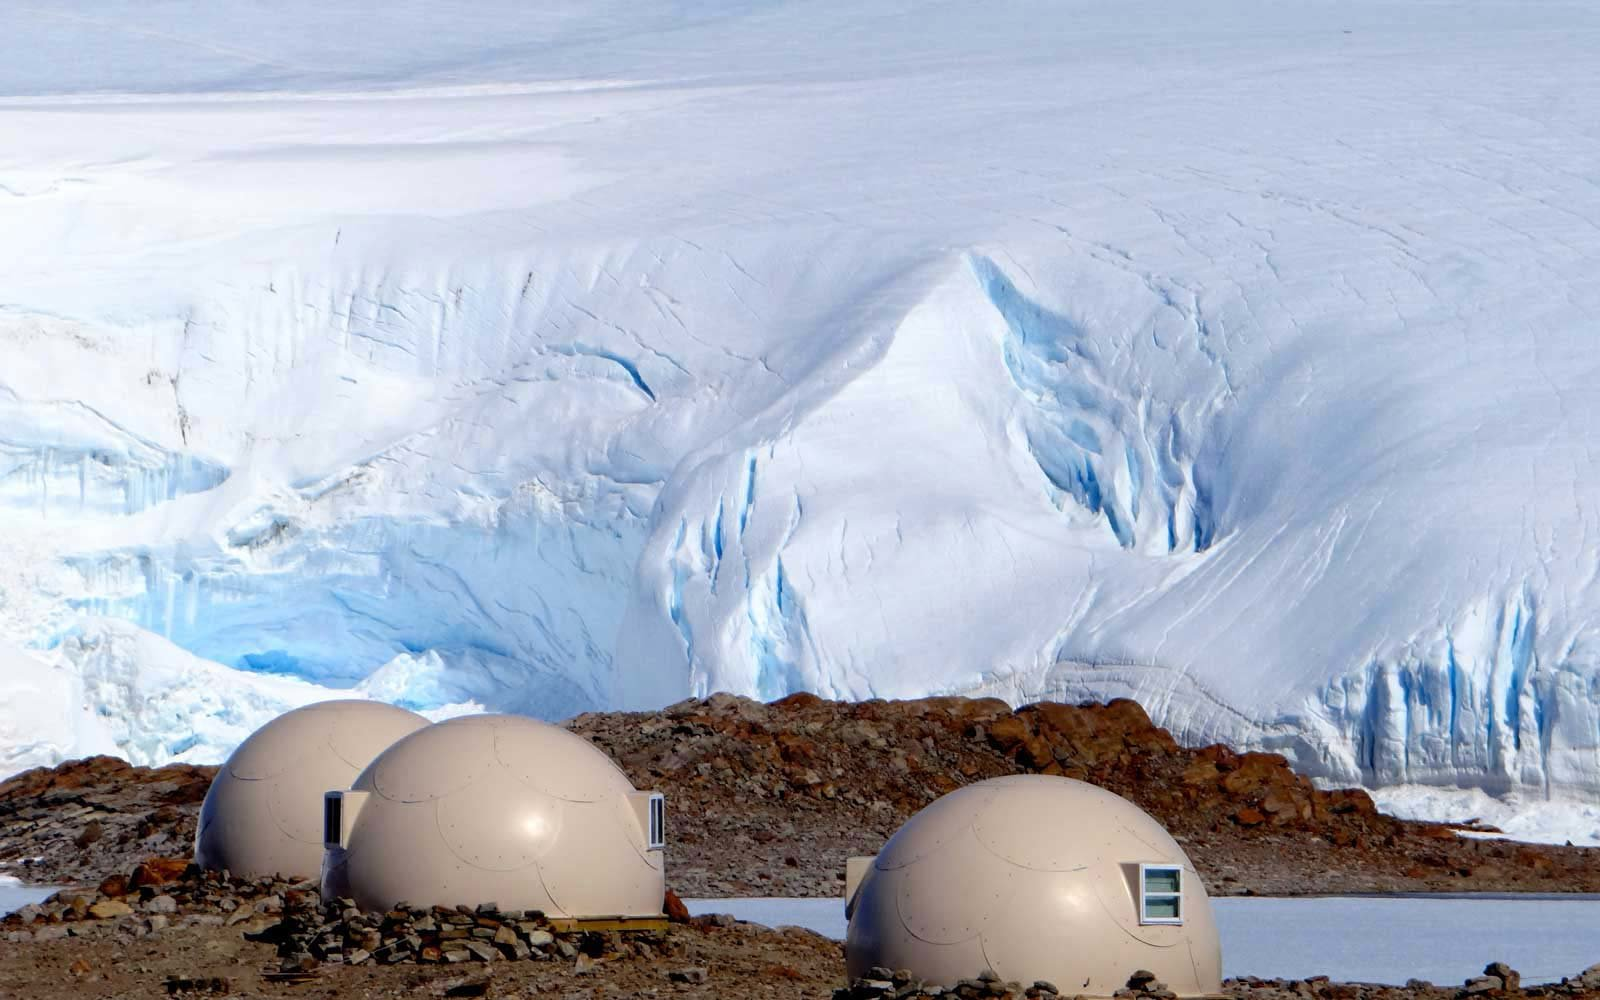 White Desert Luxury Retreats in Antarctica